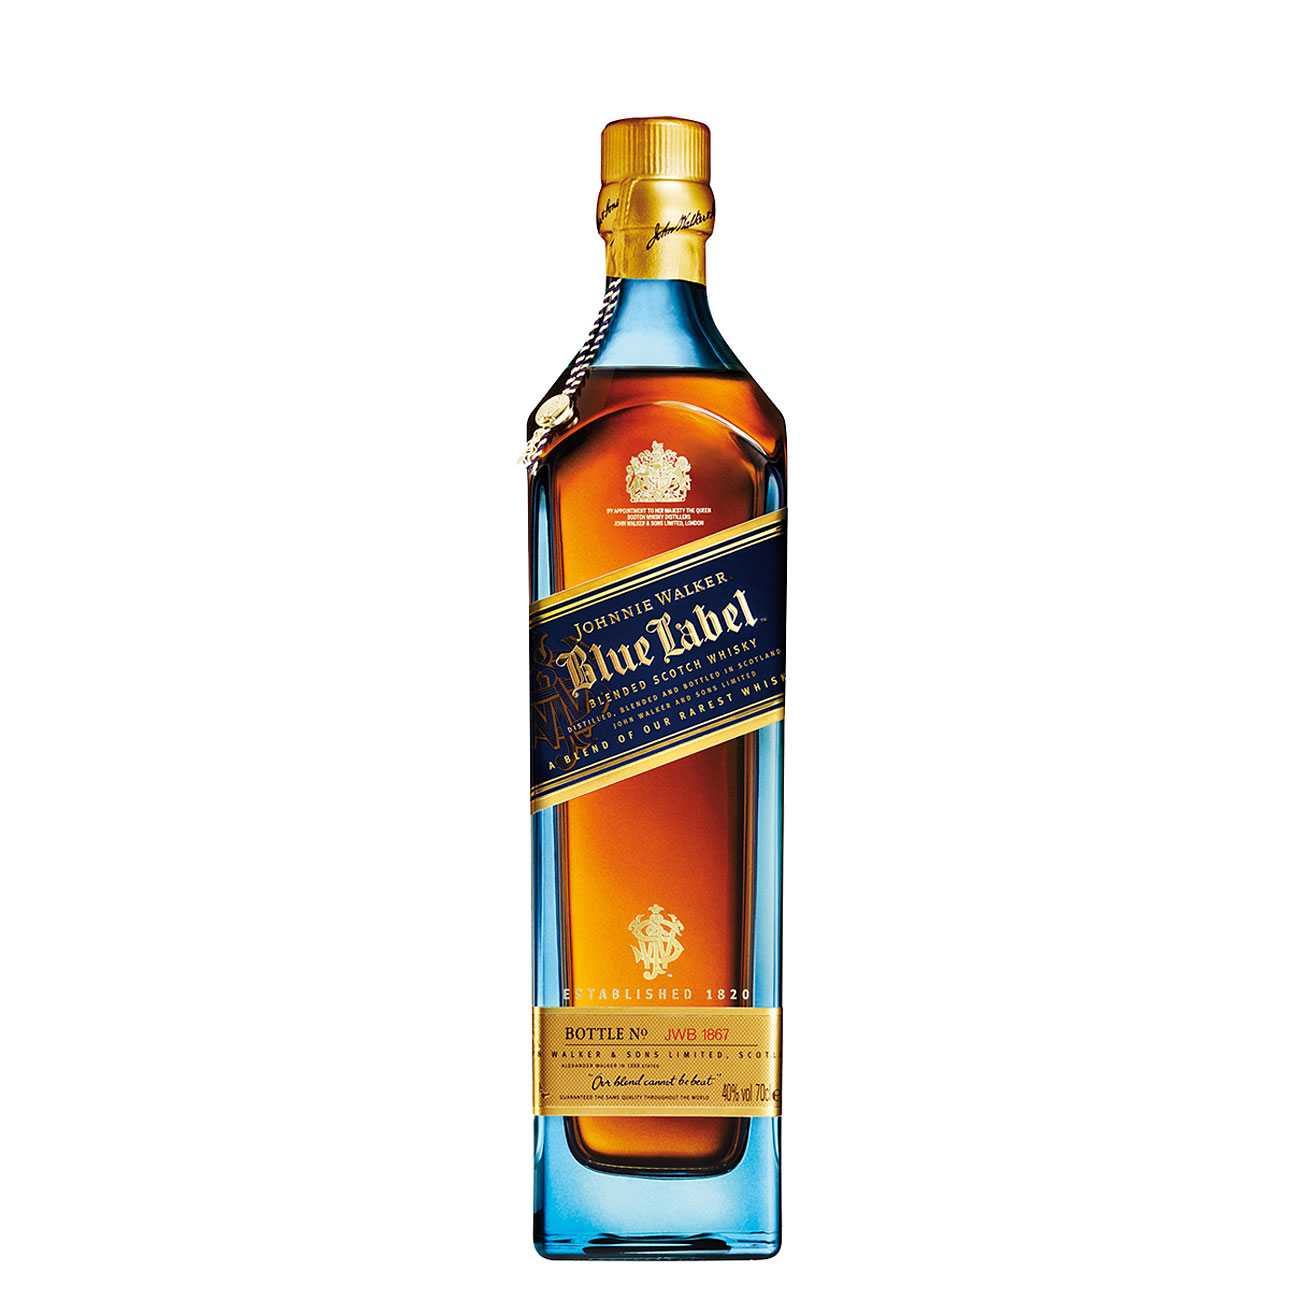 Whisky scotian, BLUE LABEL 700 ML, Johnnie Walker